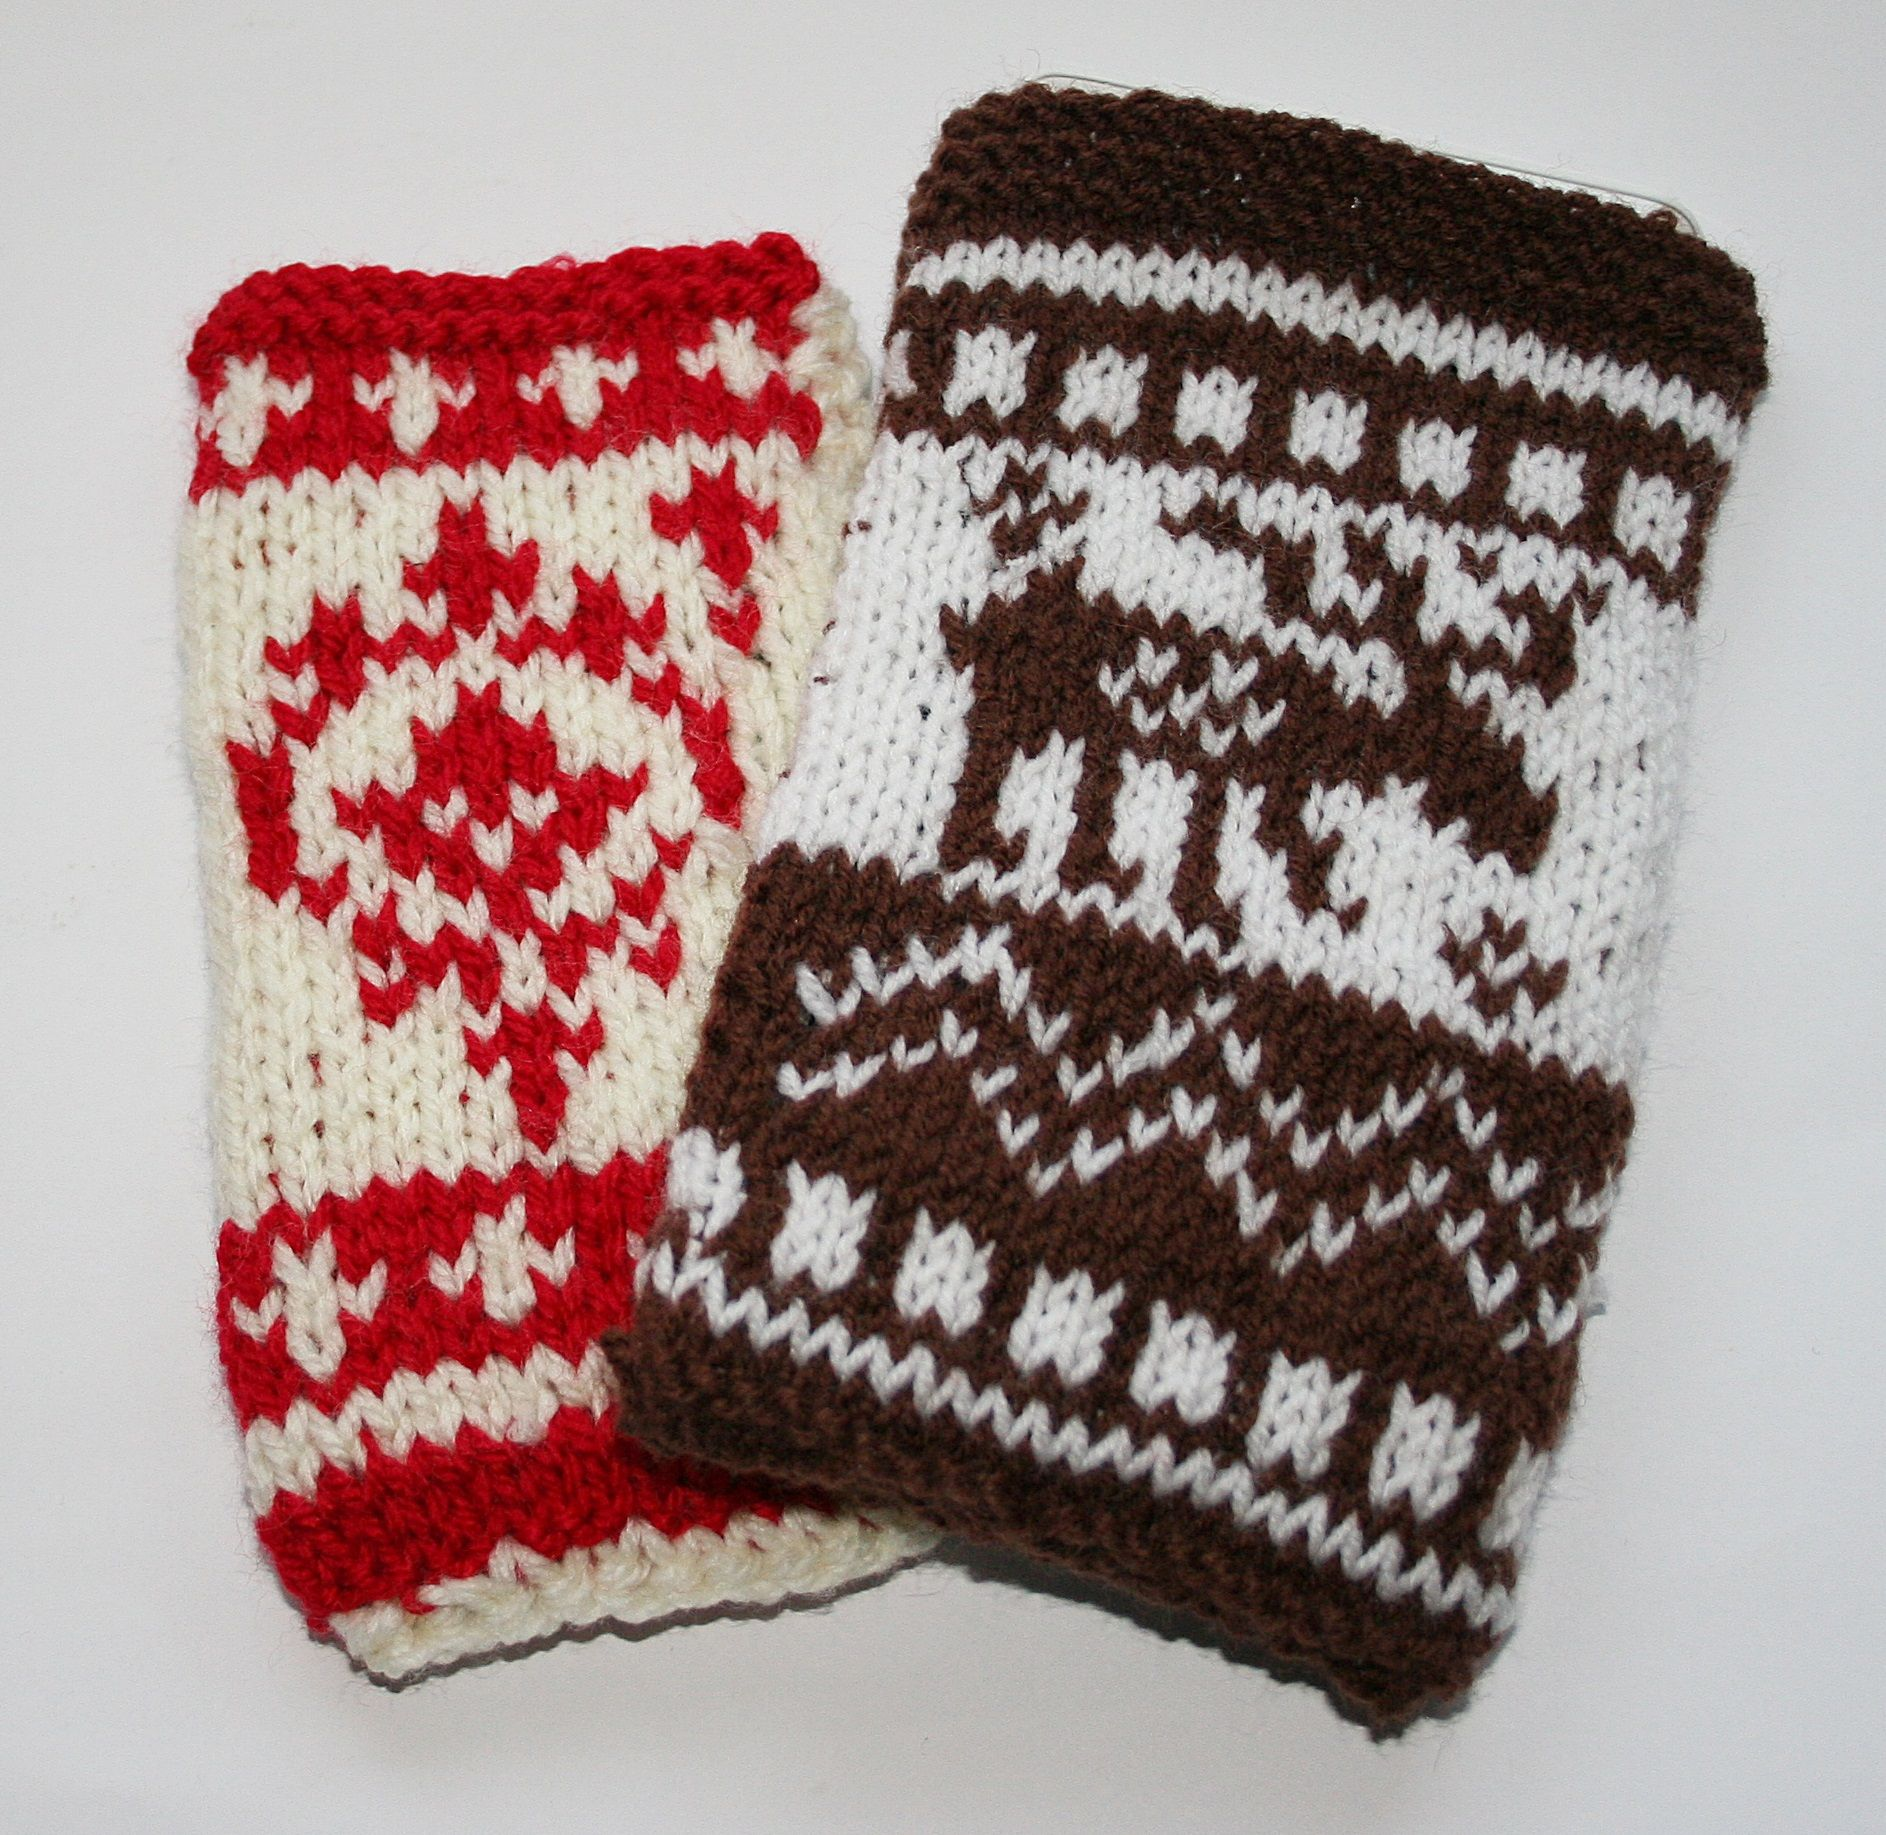 Stylish cell phone, smart phone cover. Drops pattern r-621